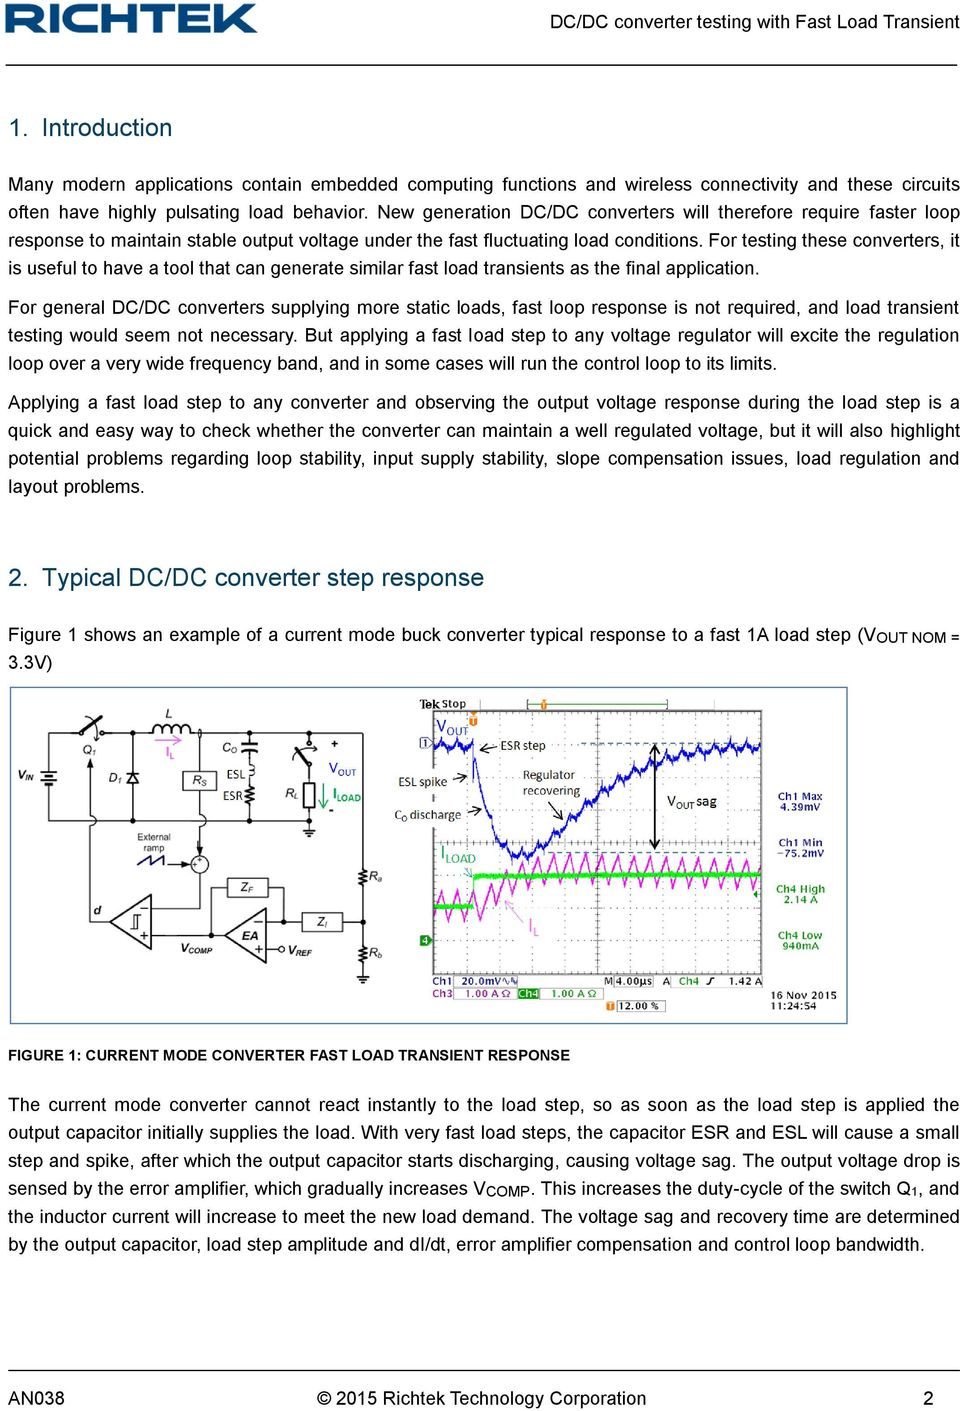 Dc Converter Testing With Fast Load Transient Pdf Buck 1 Watt White Led Driver For These Converters It Is Useful To Have A Tool That Can Generate Similar